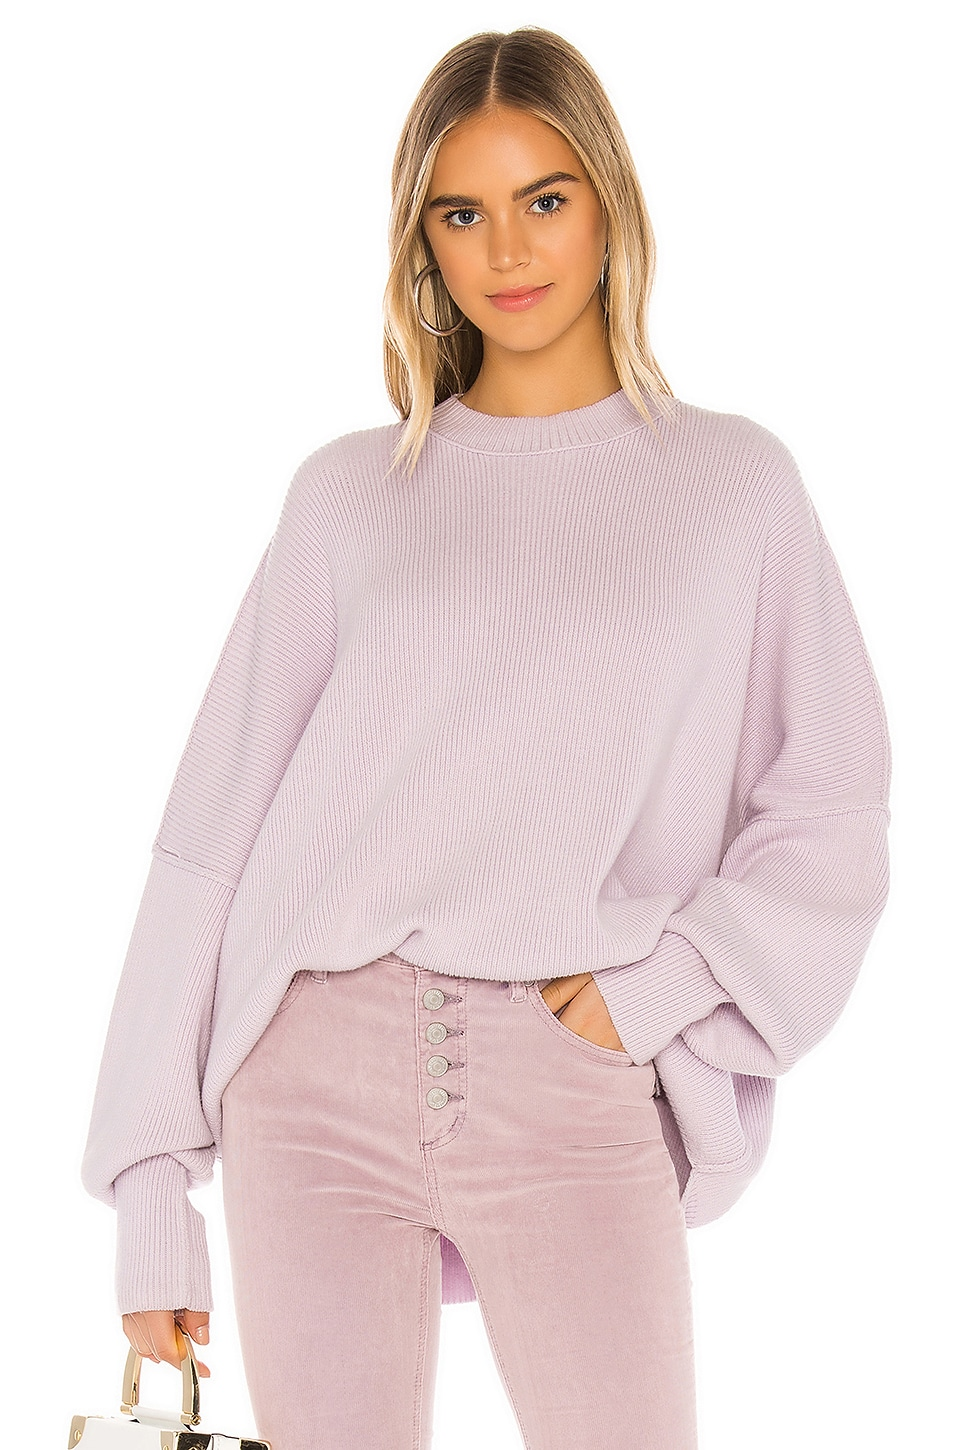 Free People Easy Street Tunic in Lavender